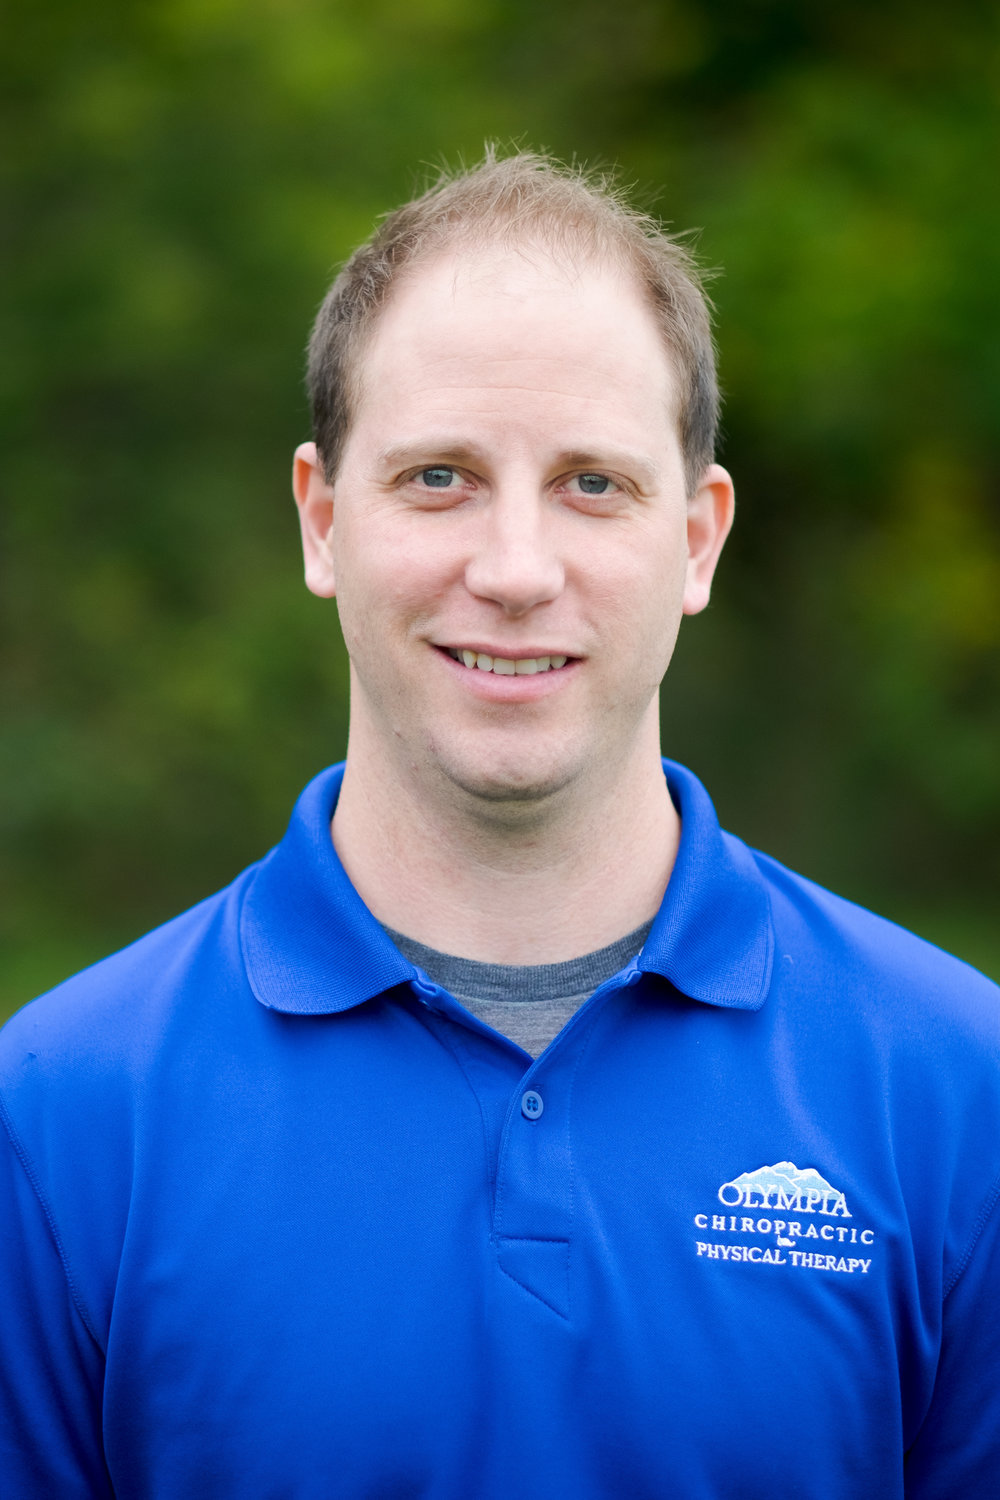 Greg Henry - Physical Therapy Assistant